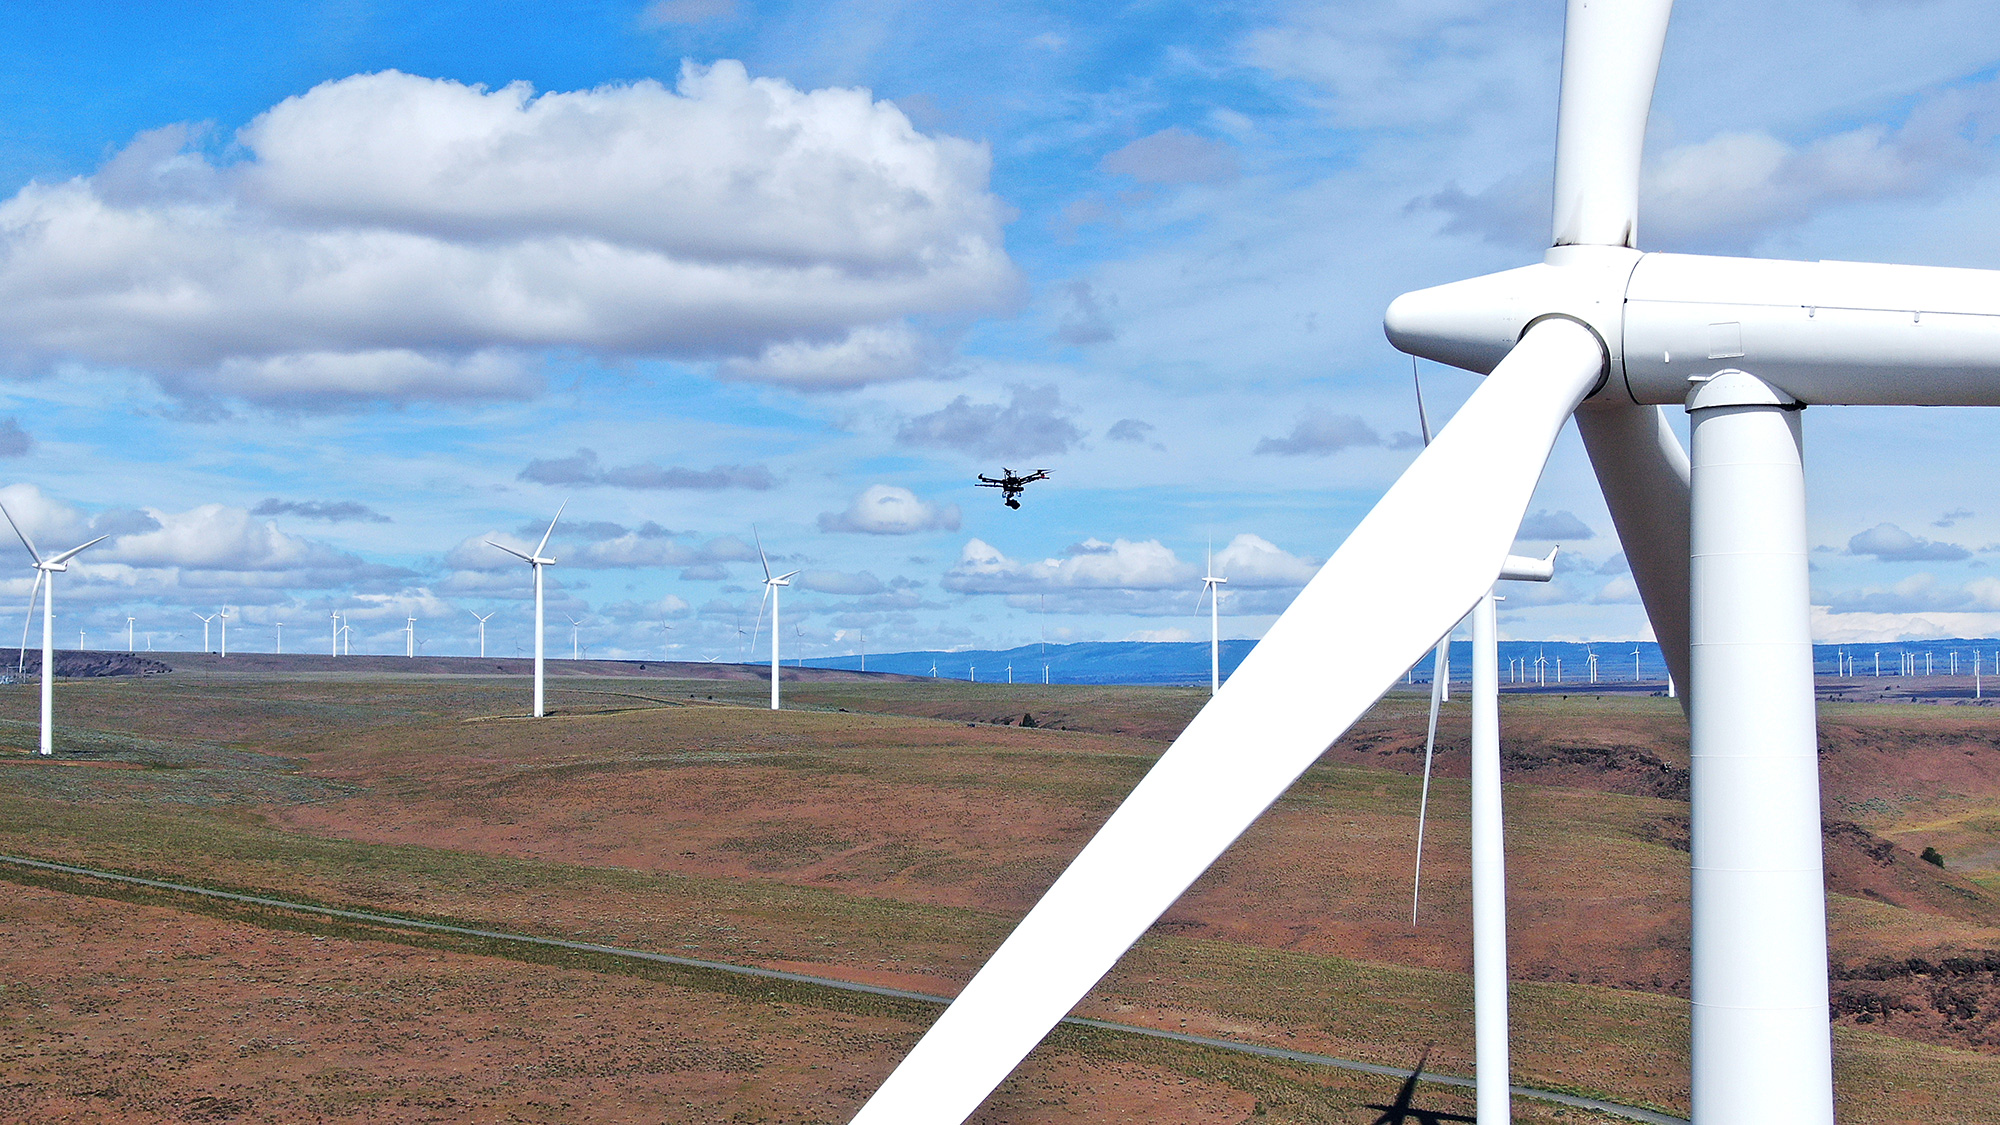 Copyright Action Drone Wind Turbine Inspection